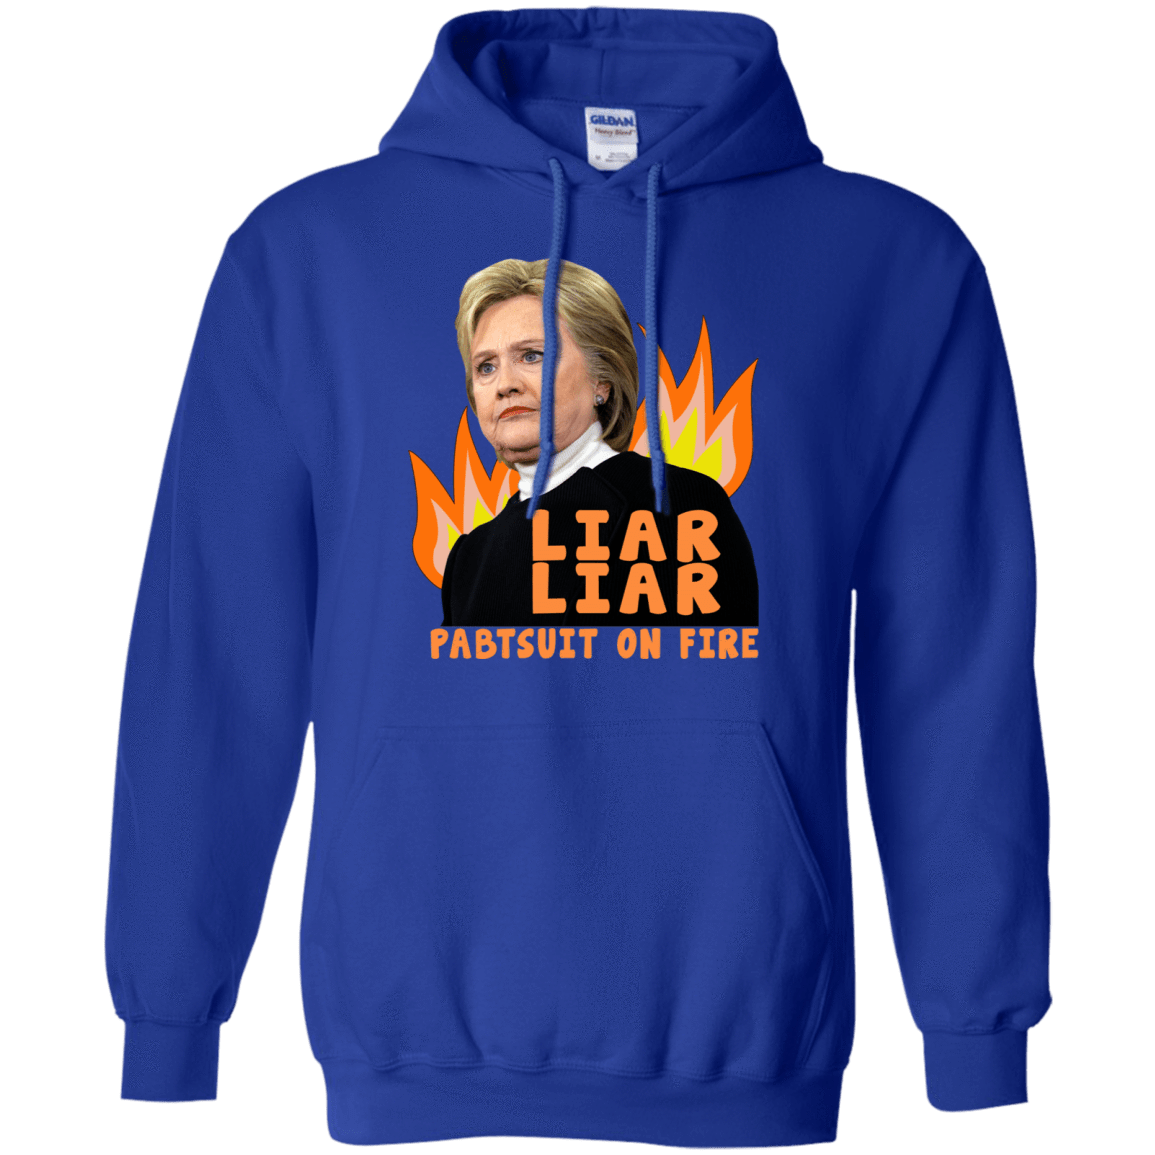 Hillary Clinton: Liar Liar Pantsuit On Fire 541-4765-74096013-23175 - Tee Ript